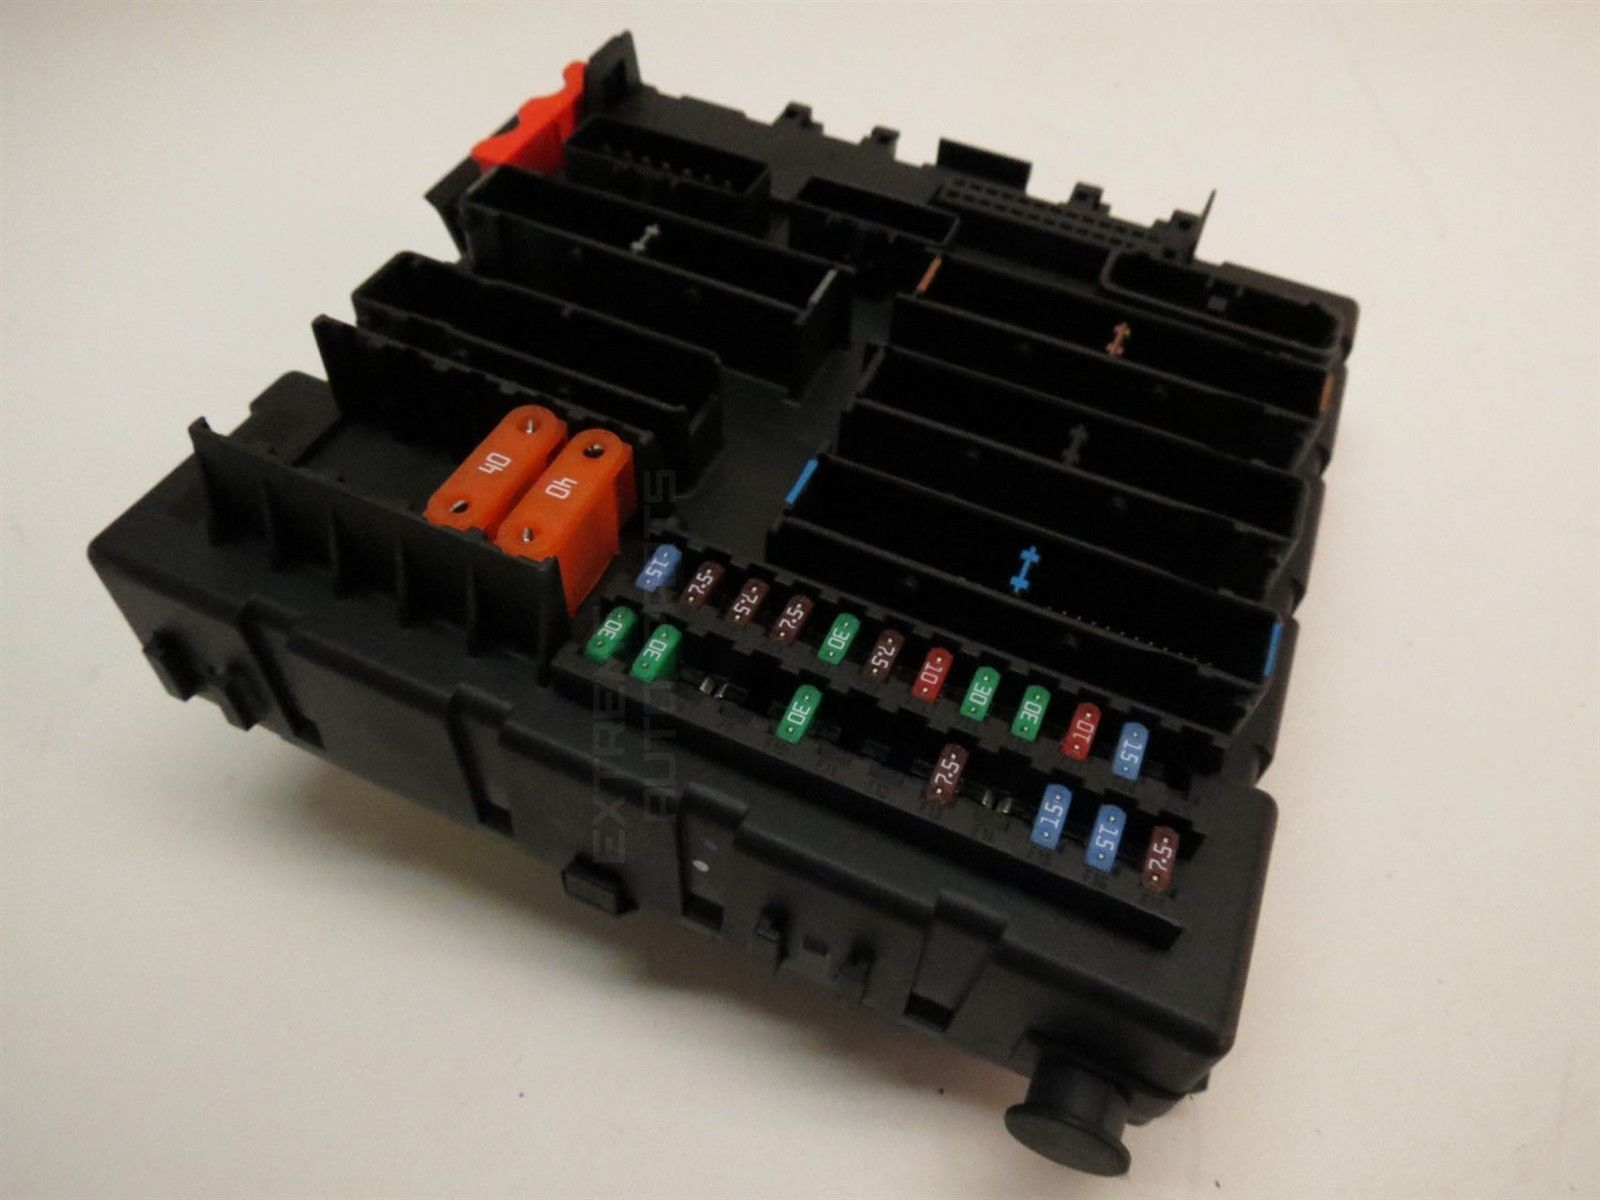 2008 Saab 9 3 Fuse Box Wiring Diagram Will Be A Thing Pontiac G6 Trunk Shifter Jeep Compass